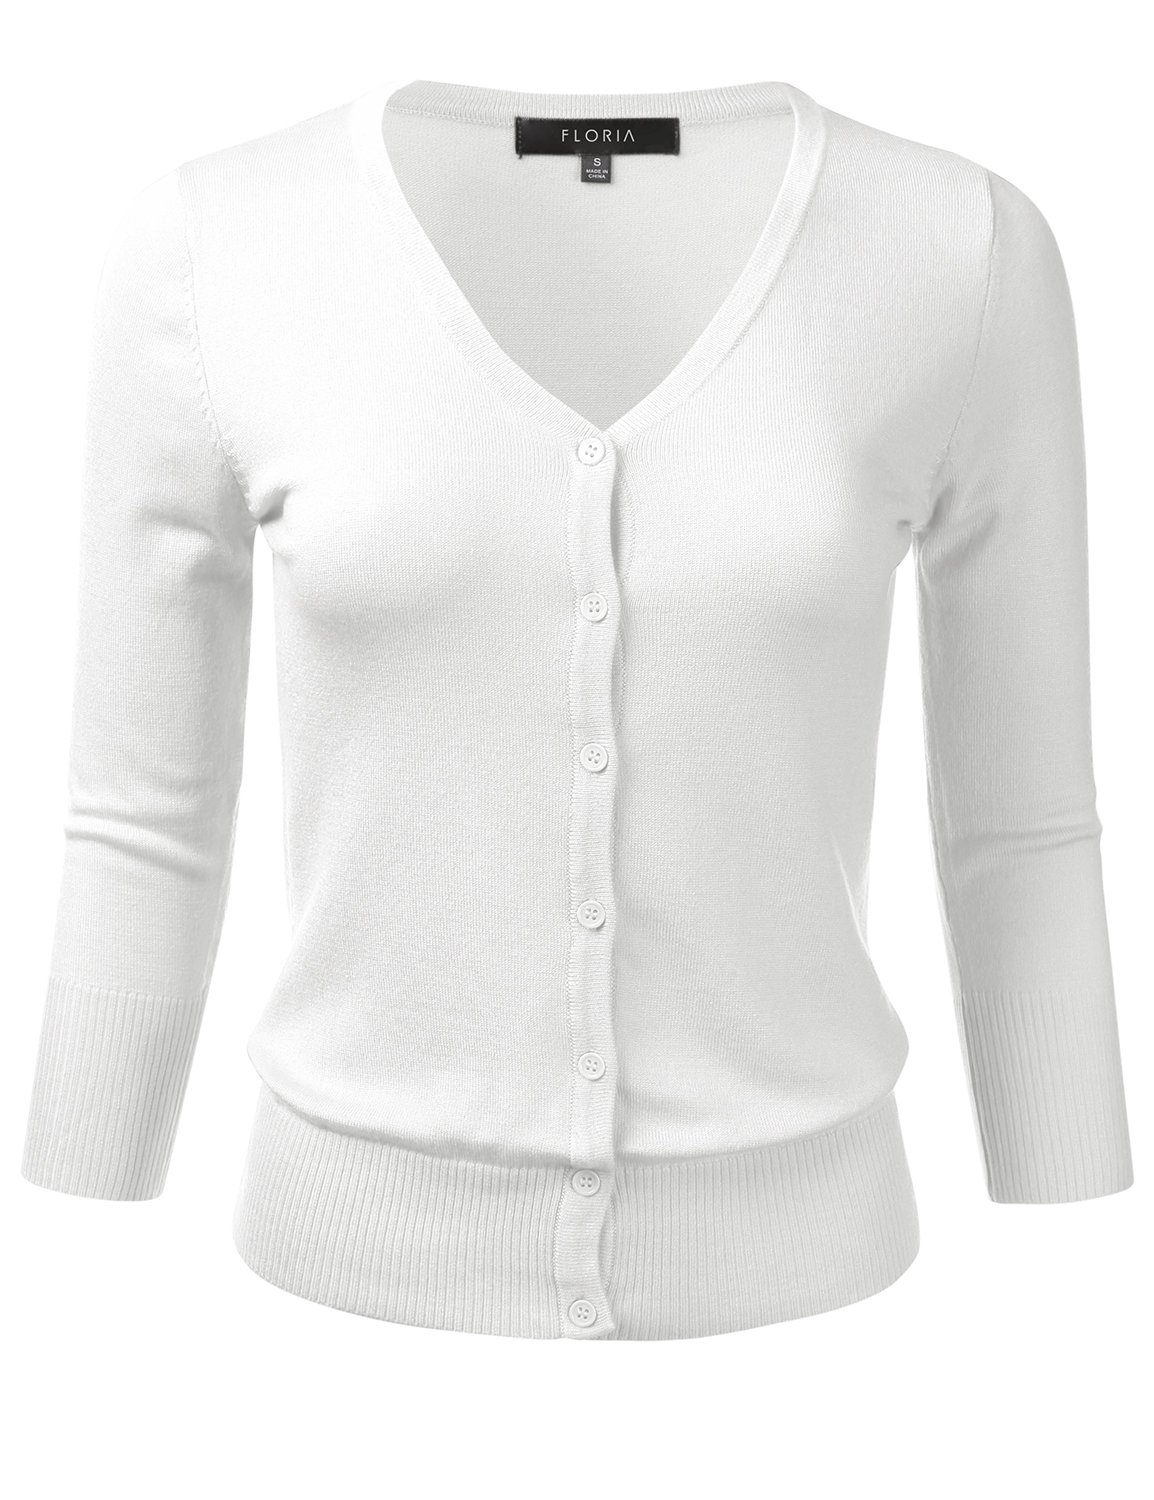 FLORIA Womens Button Down 3/4 Sleeve V-Neck Stretch Knit Cardigan Sweater White L